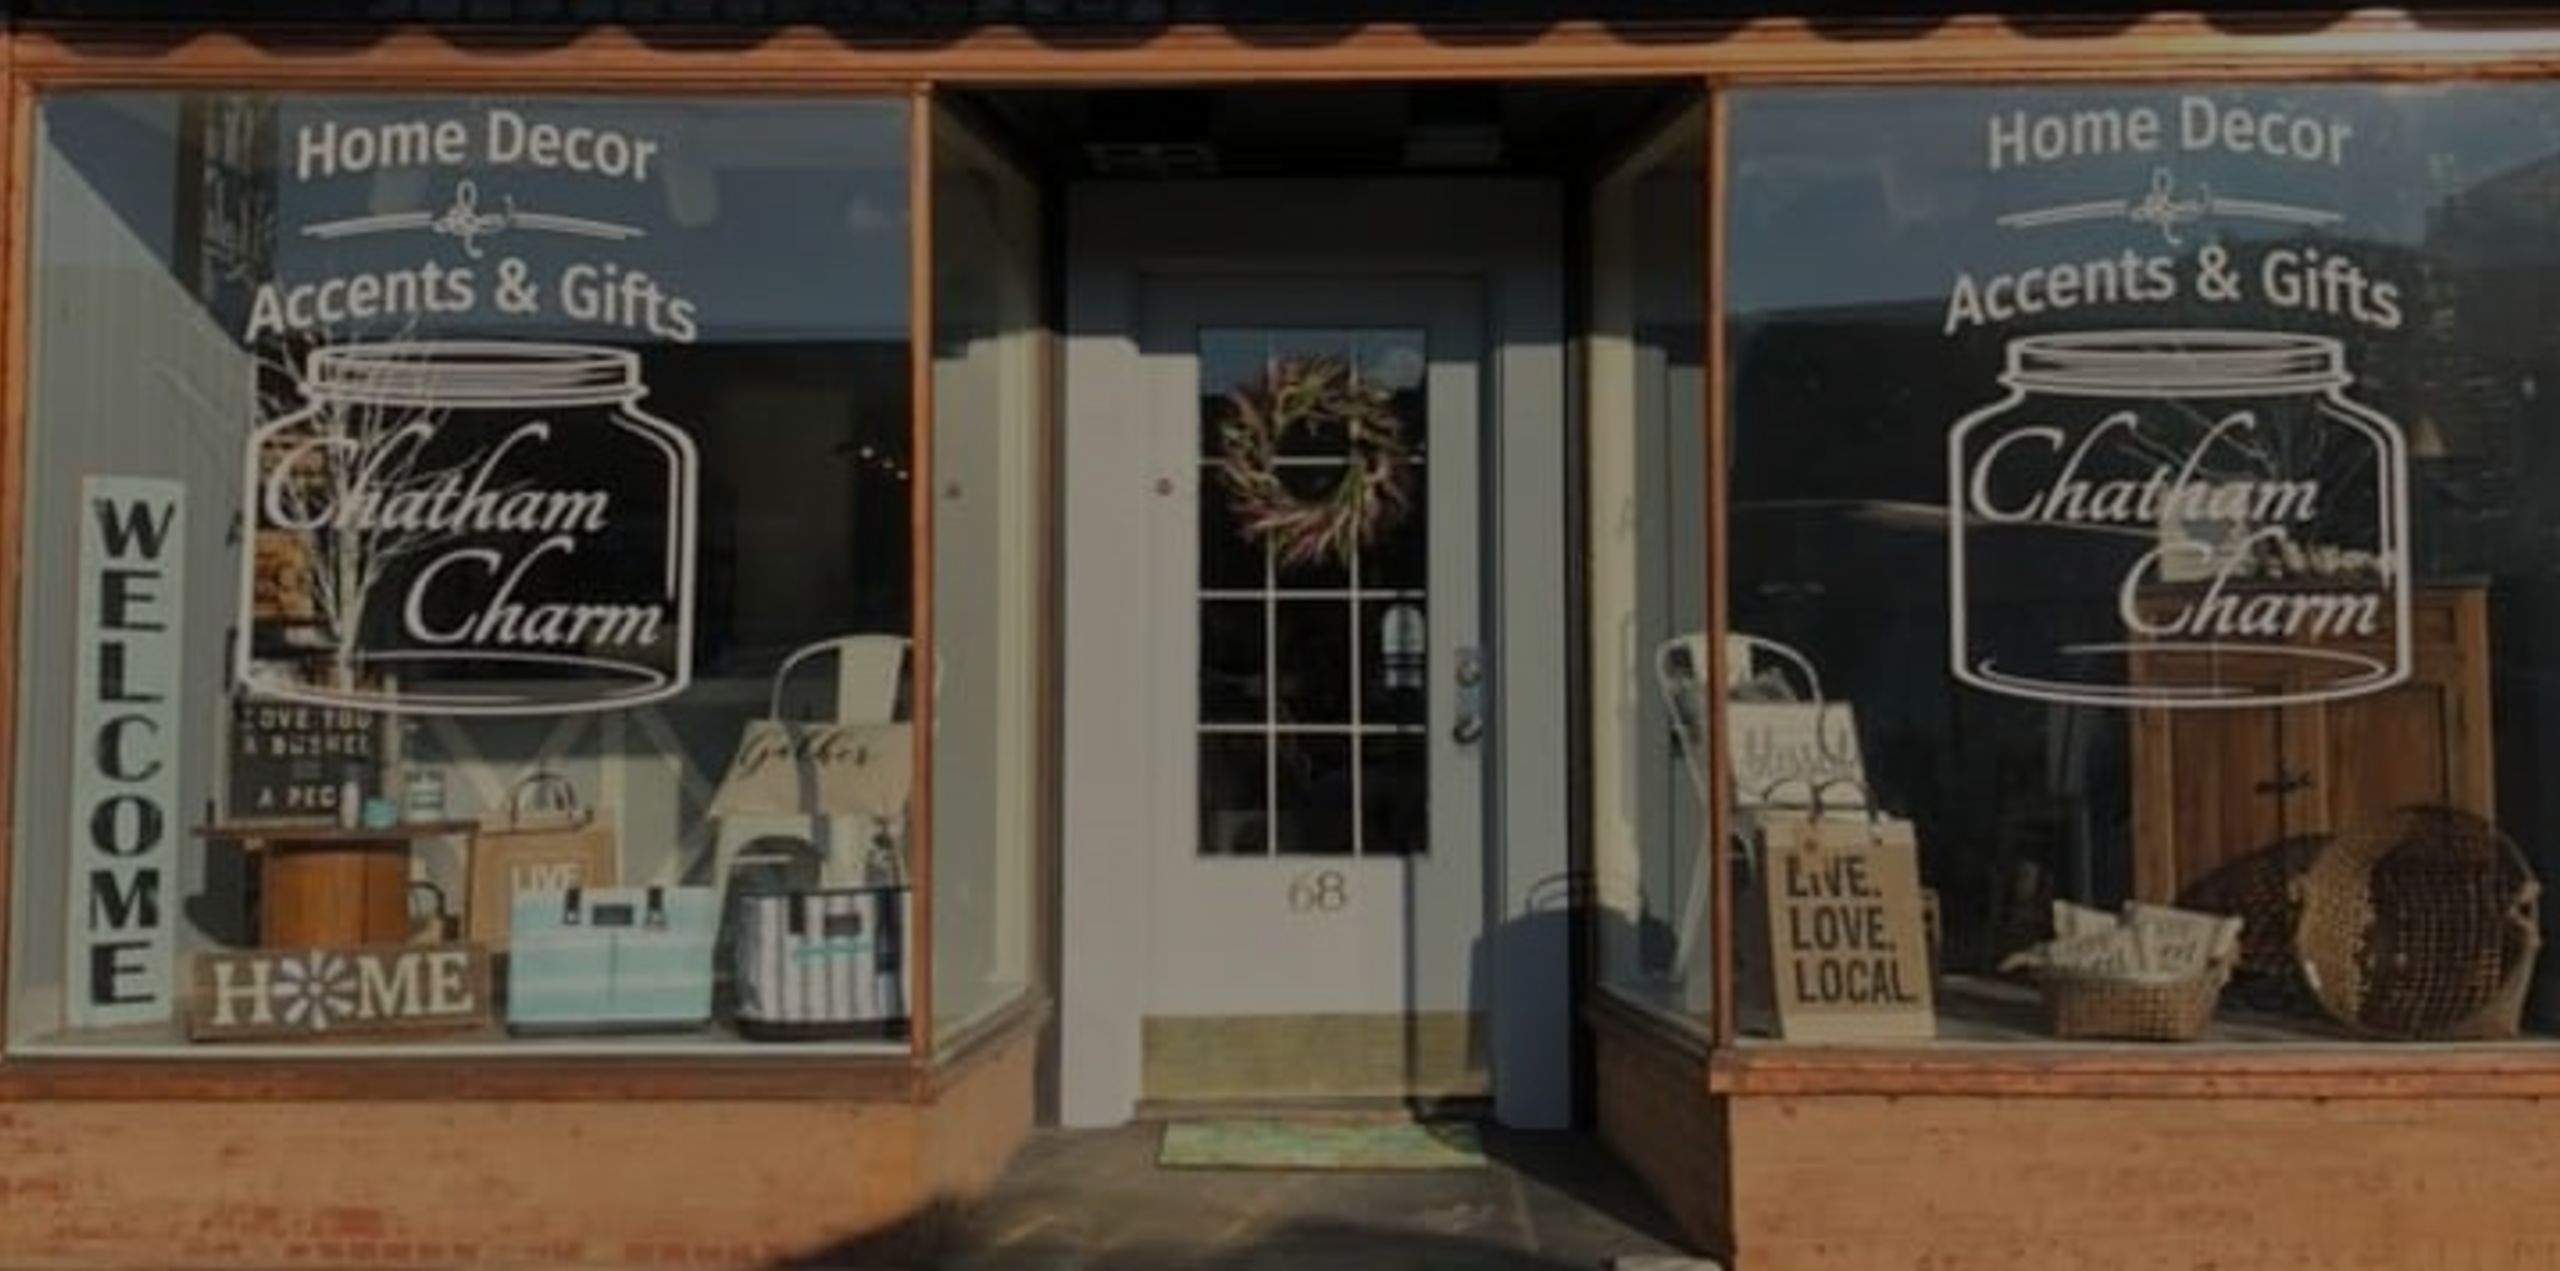 Chatham Charm Now Open in Pittsboro!